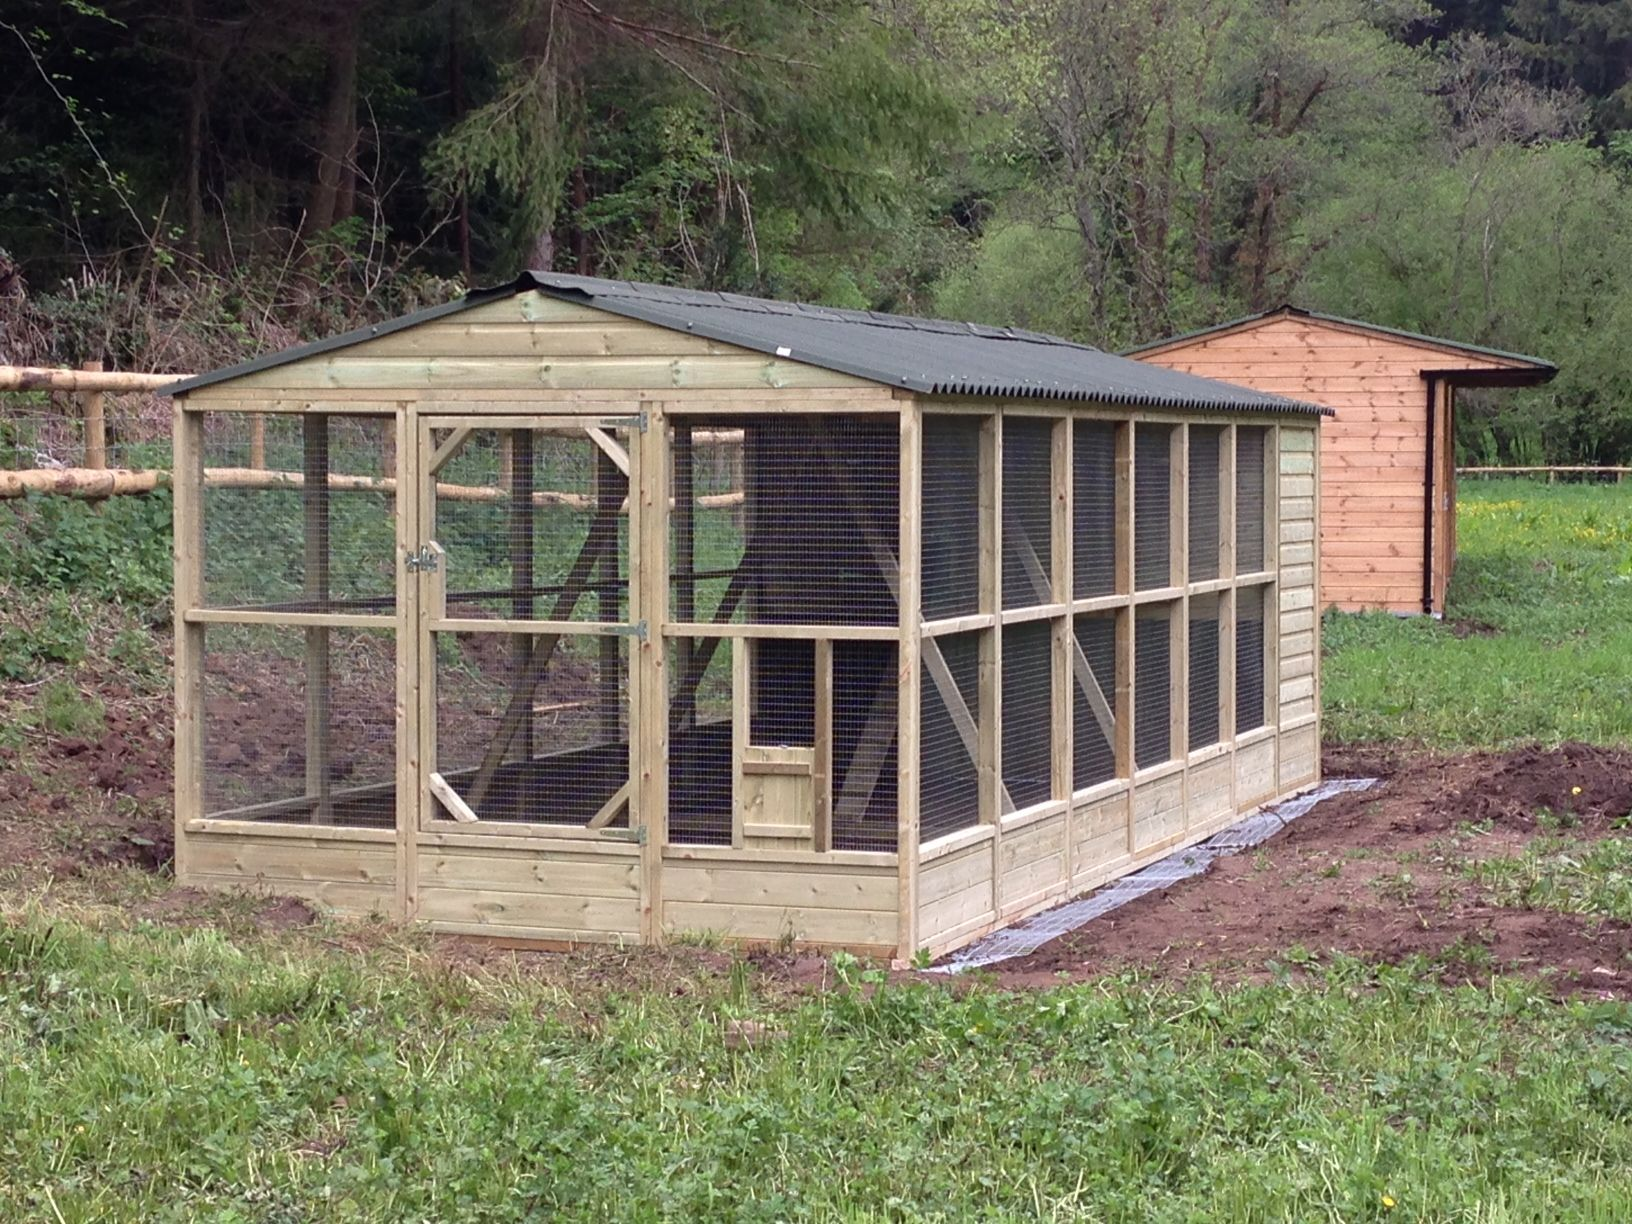 Walk In Chicken House 9x21' walk in chicken coop and run. this is a great design. it